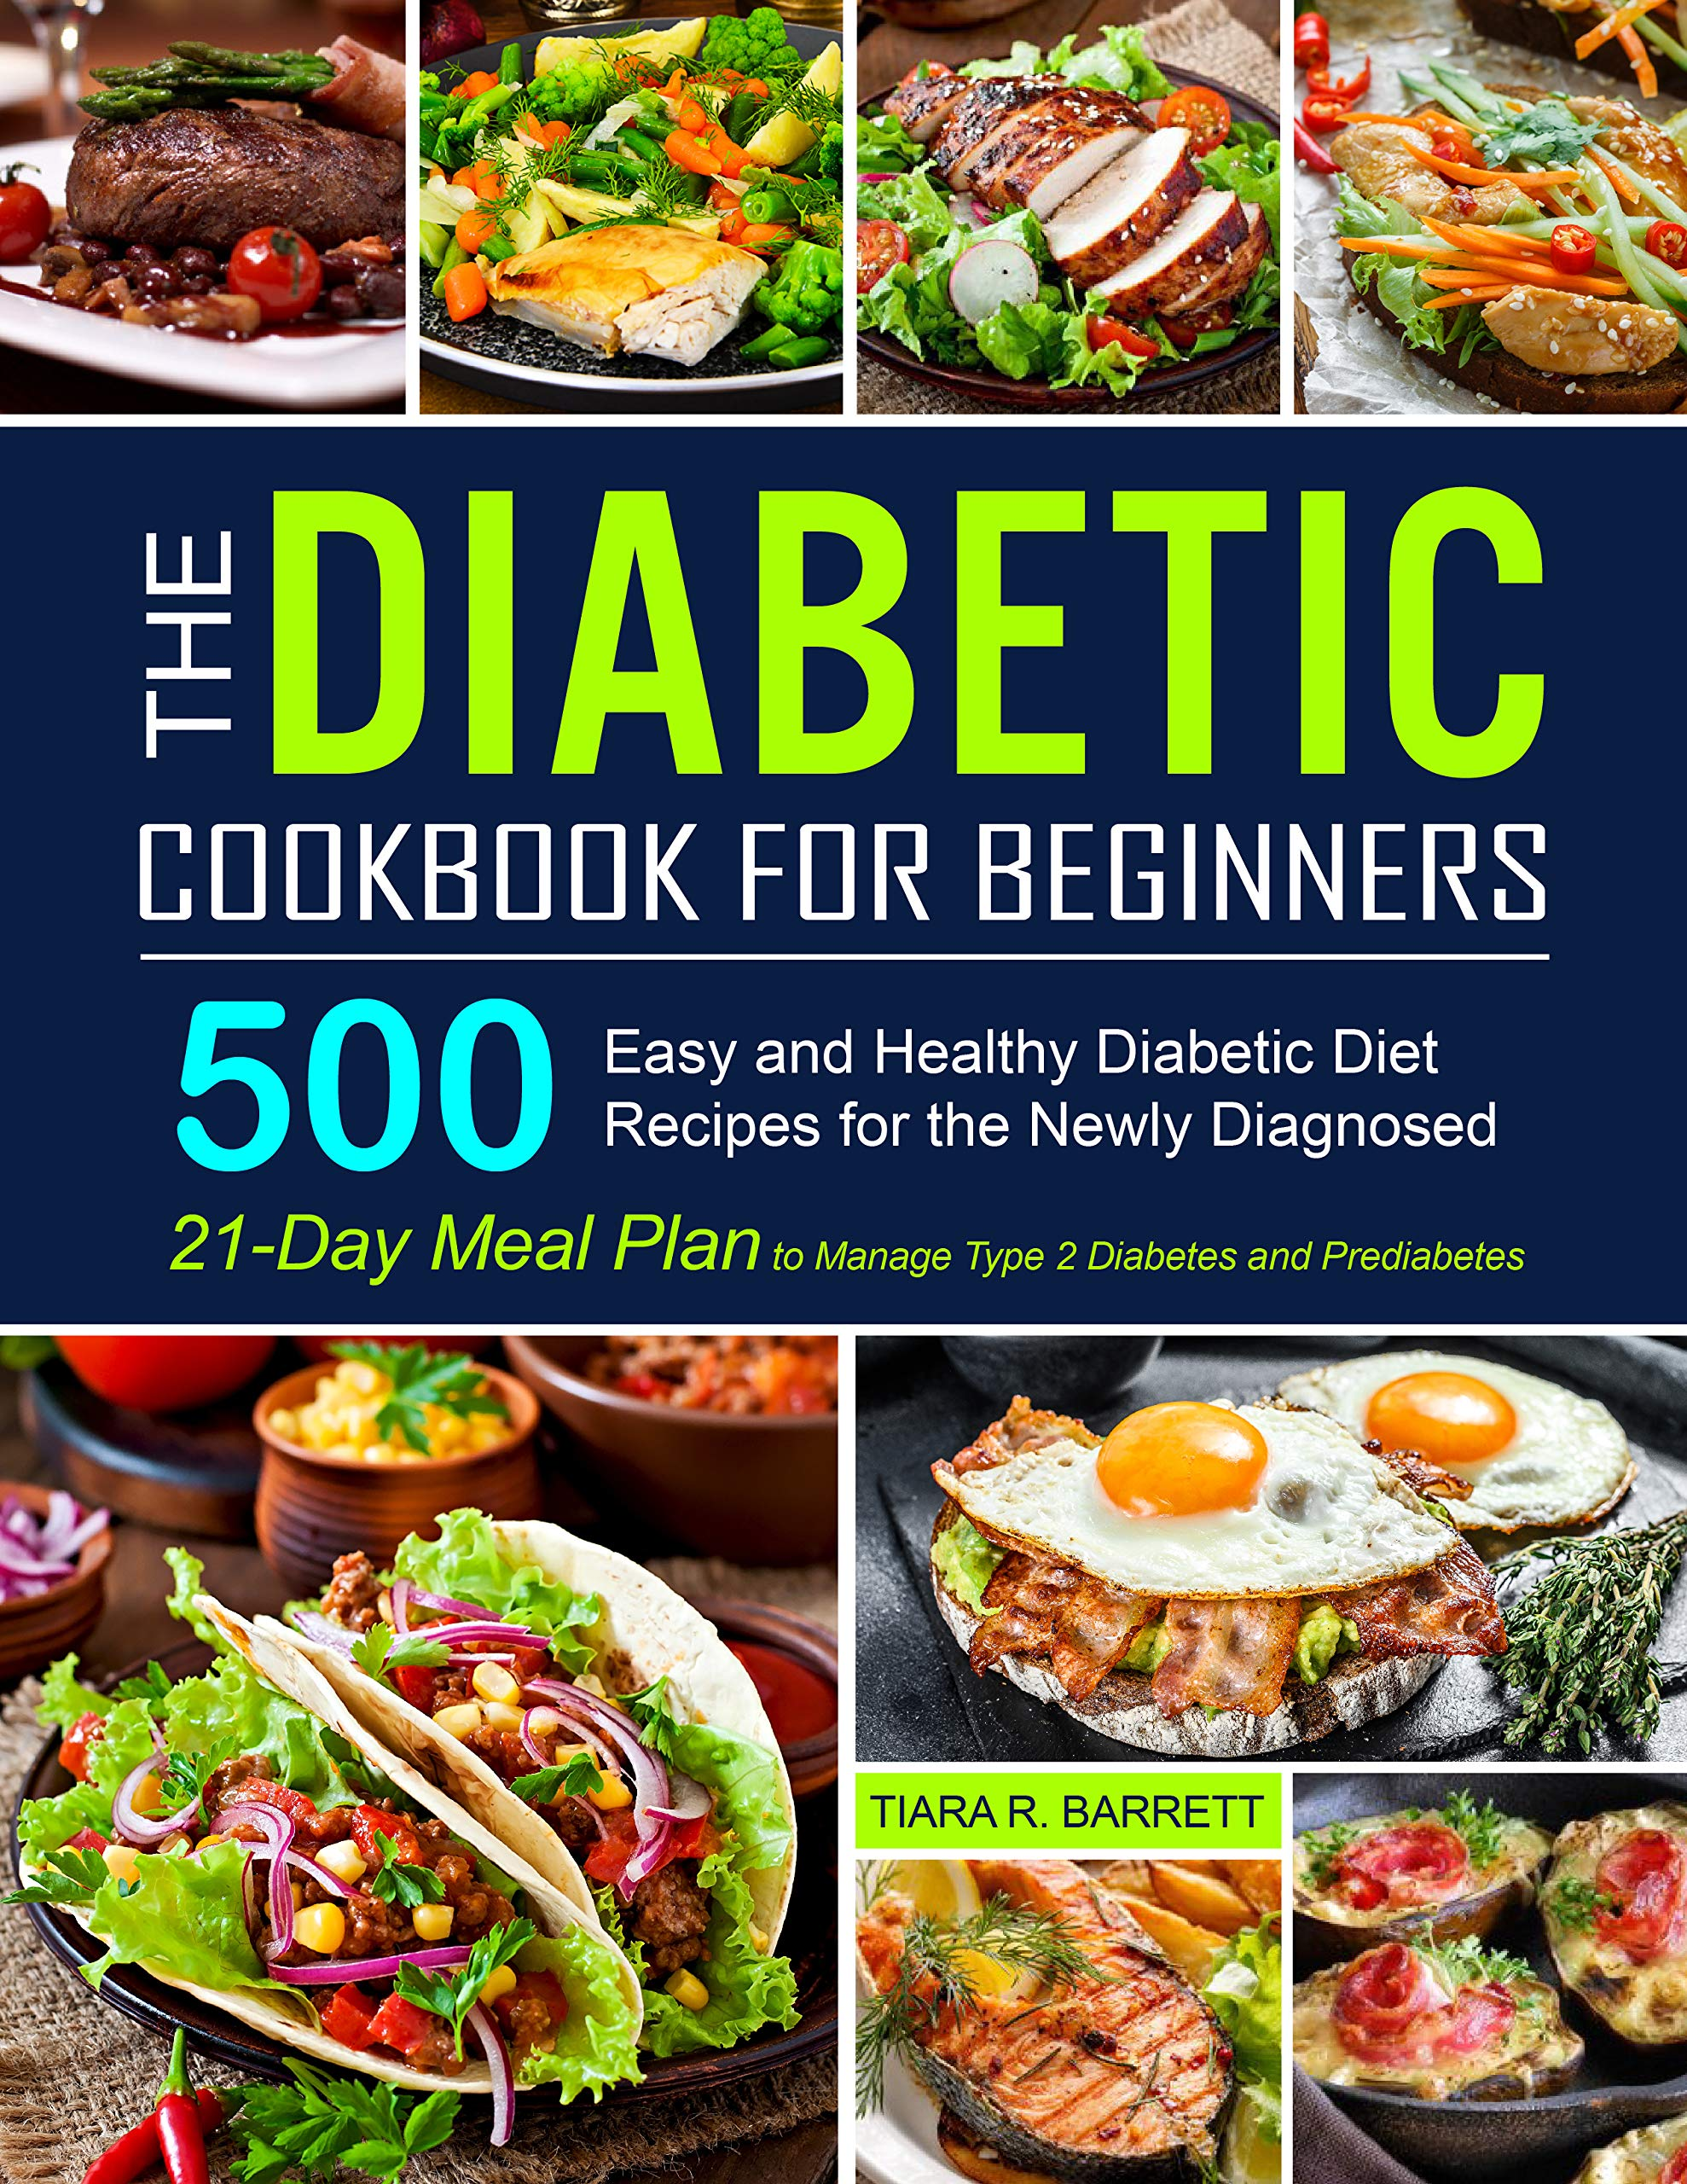 The Diabetic Cookbook for Beginners: 500 Easy and Healthy Diabetic Diet Recipes for the Newly Diagnosed   21-Day Meal Plan to Manage Type 2 Diabetes and Prediabetes